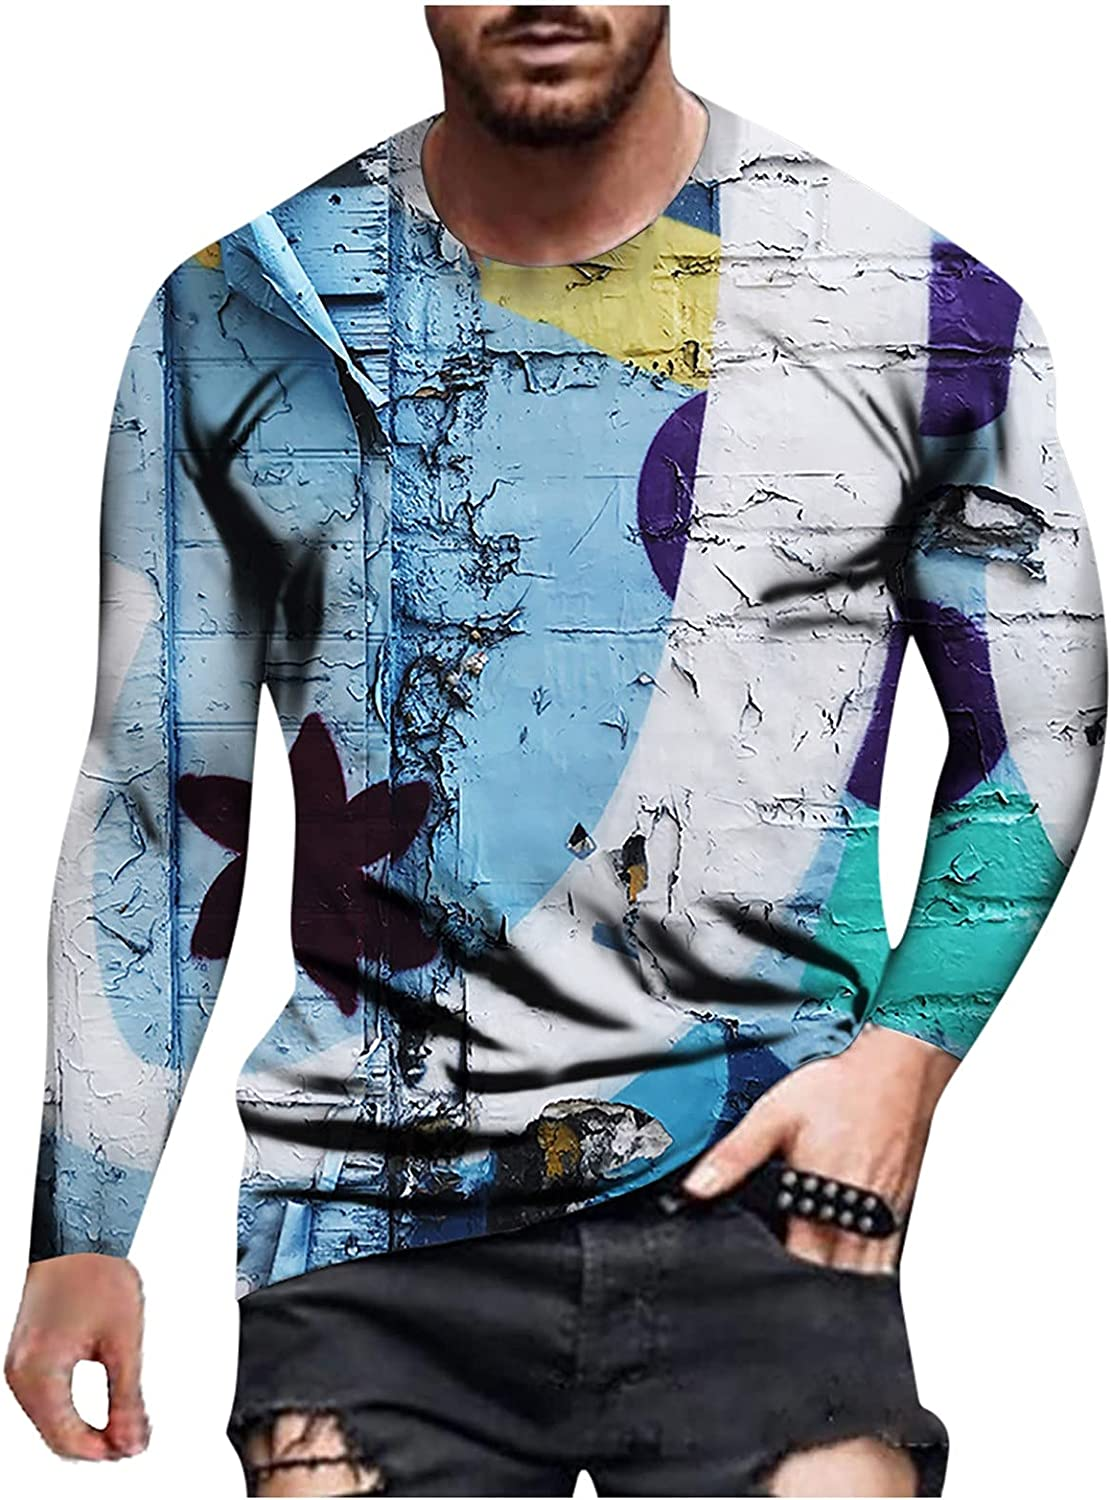 Long Sleeve for Men, Plus Size T-Shirt Retro Muscle Workout Athletics Tops 3D Print Crewneck Big and Tall Graphic Tees